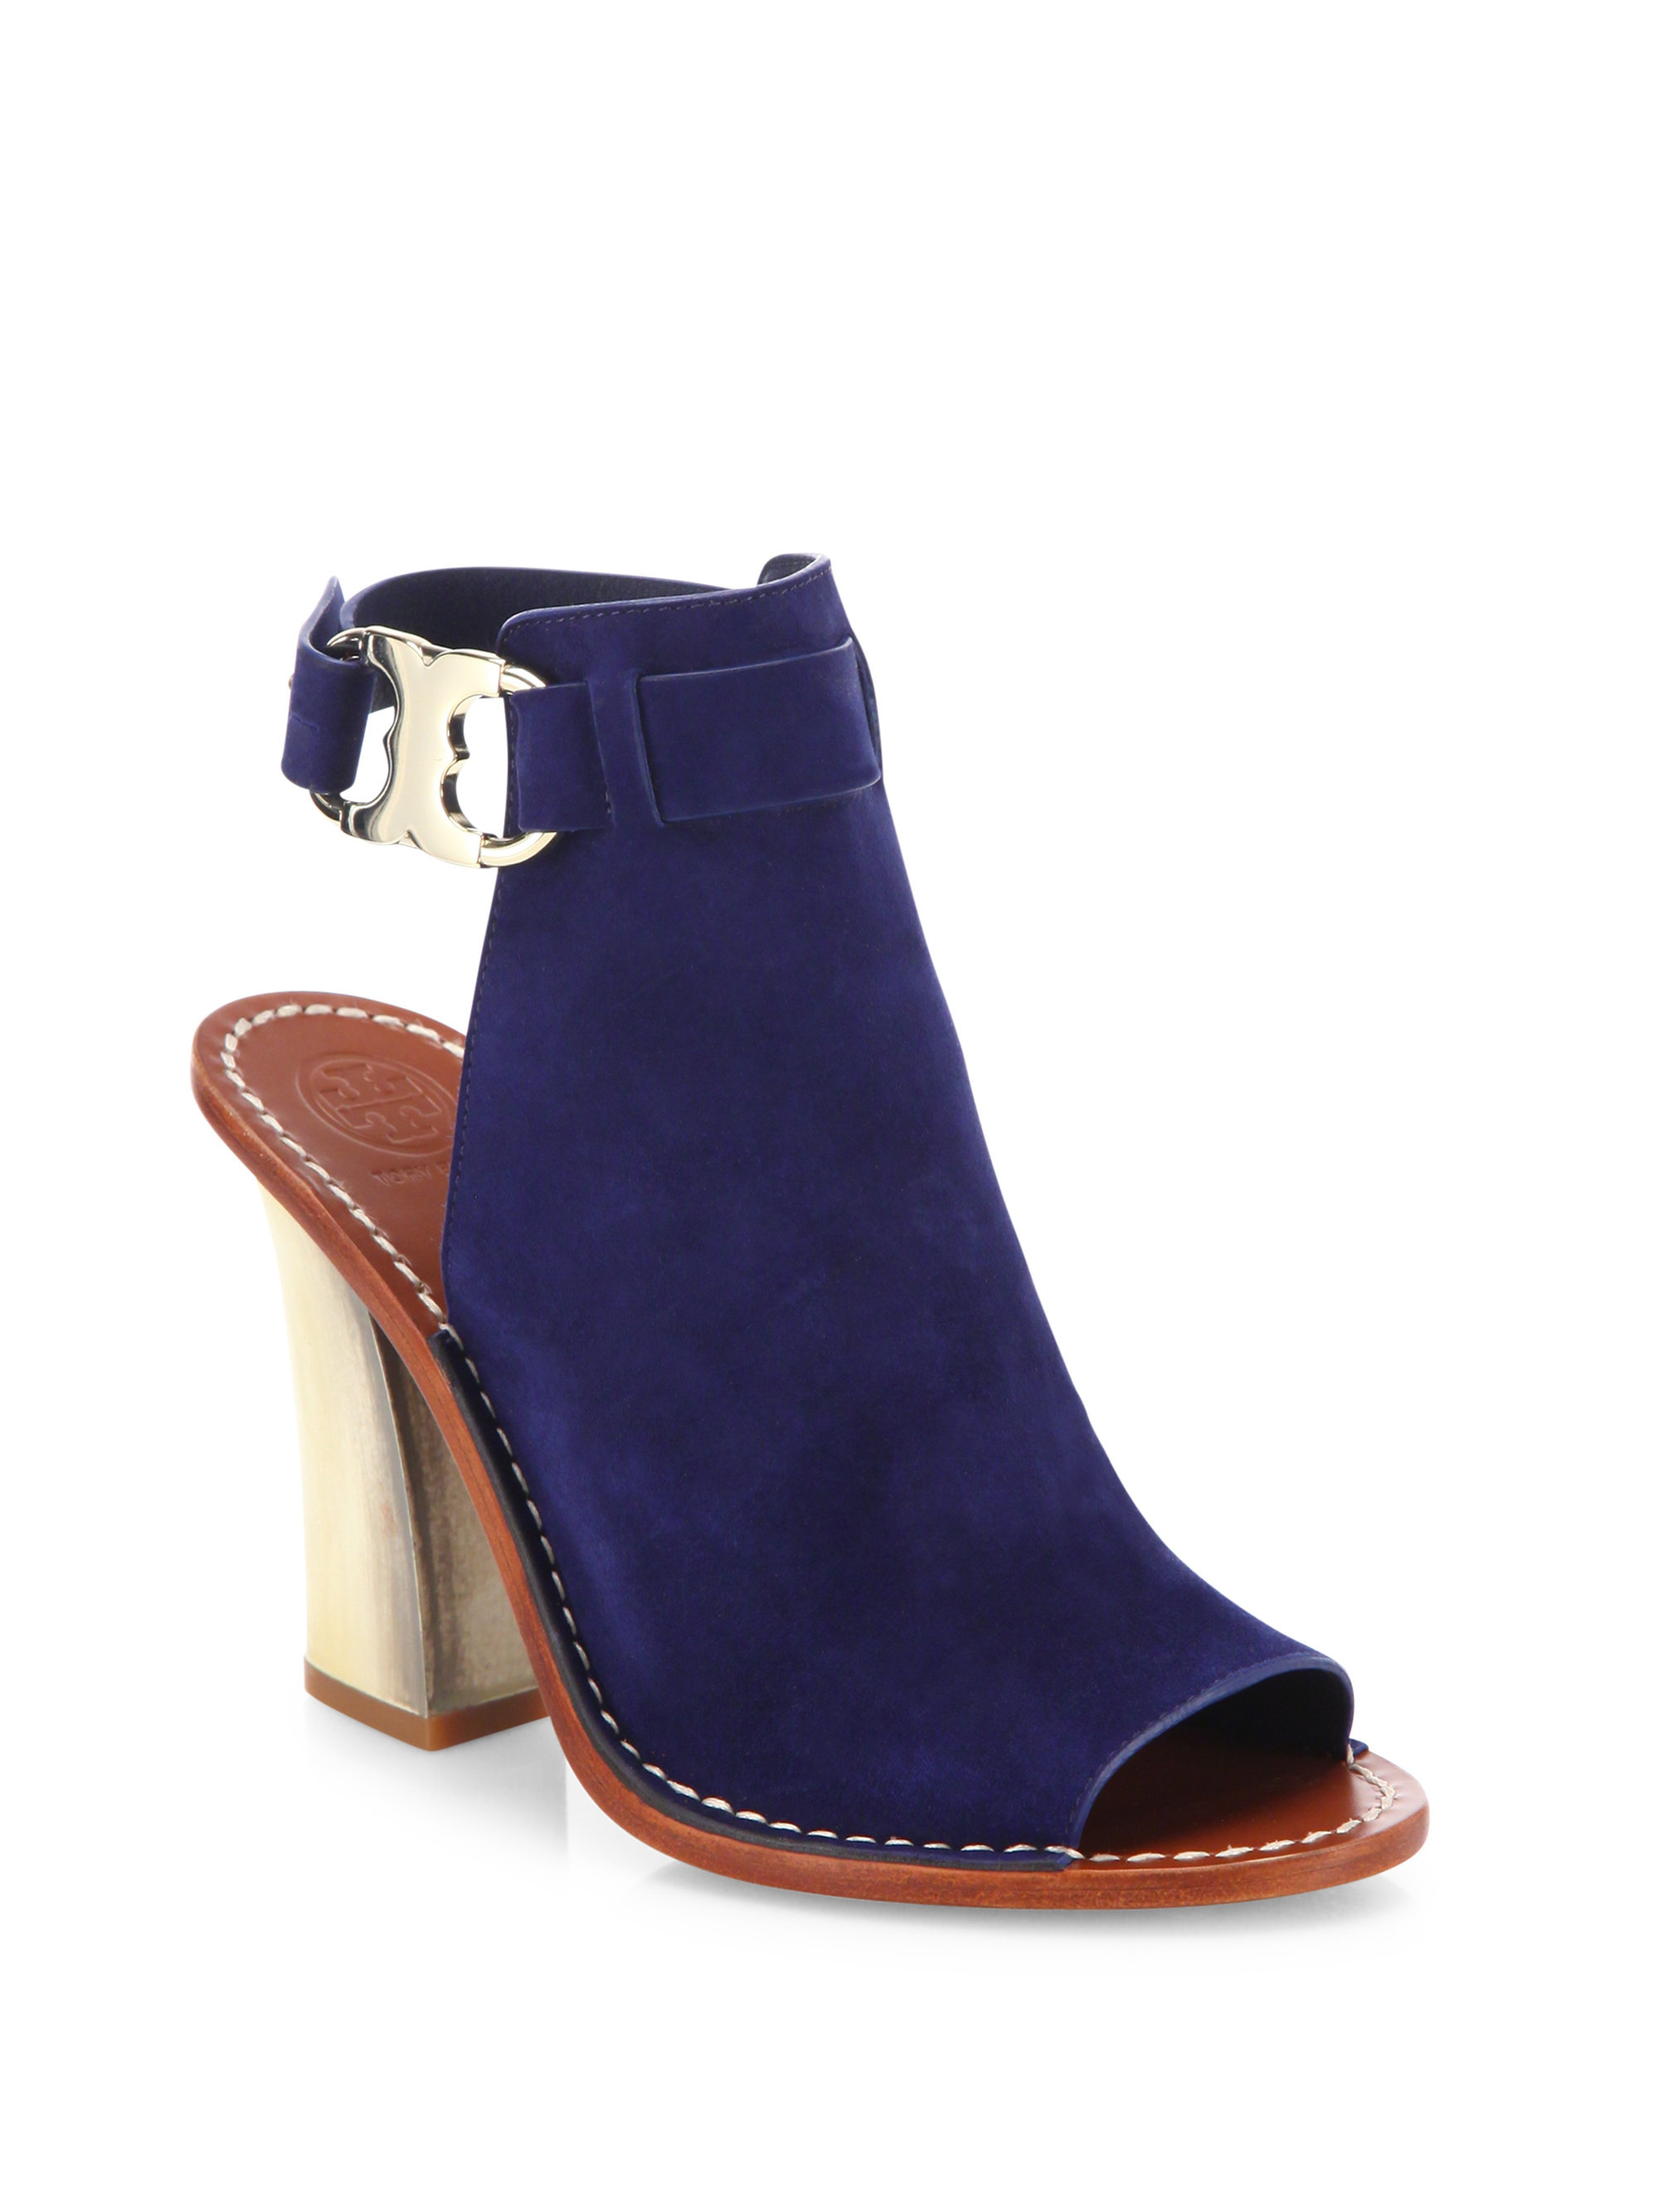 f3ba4c684cdc Lyst - Tory Burch Gemini Link Suede Peep-toe Block-heel Sandals in Blue